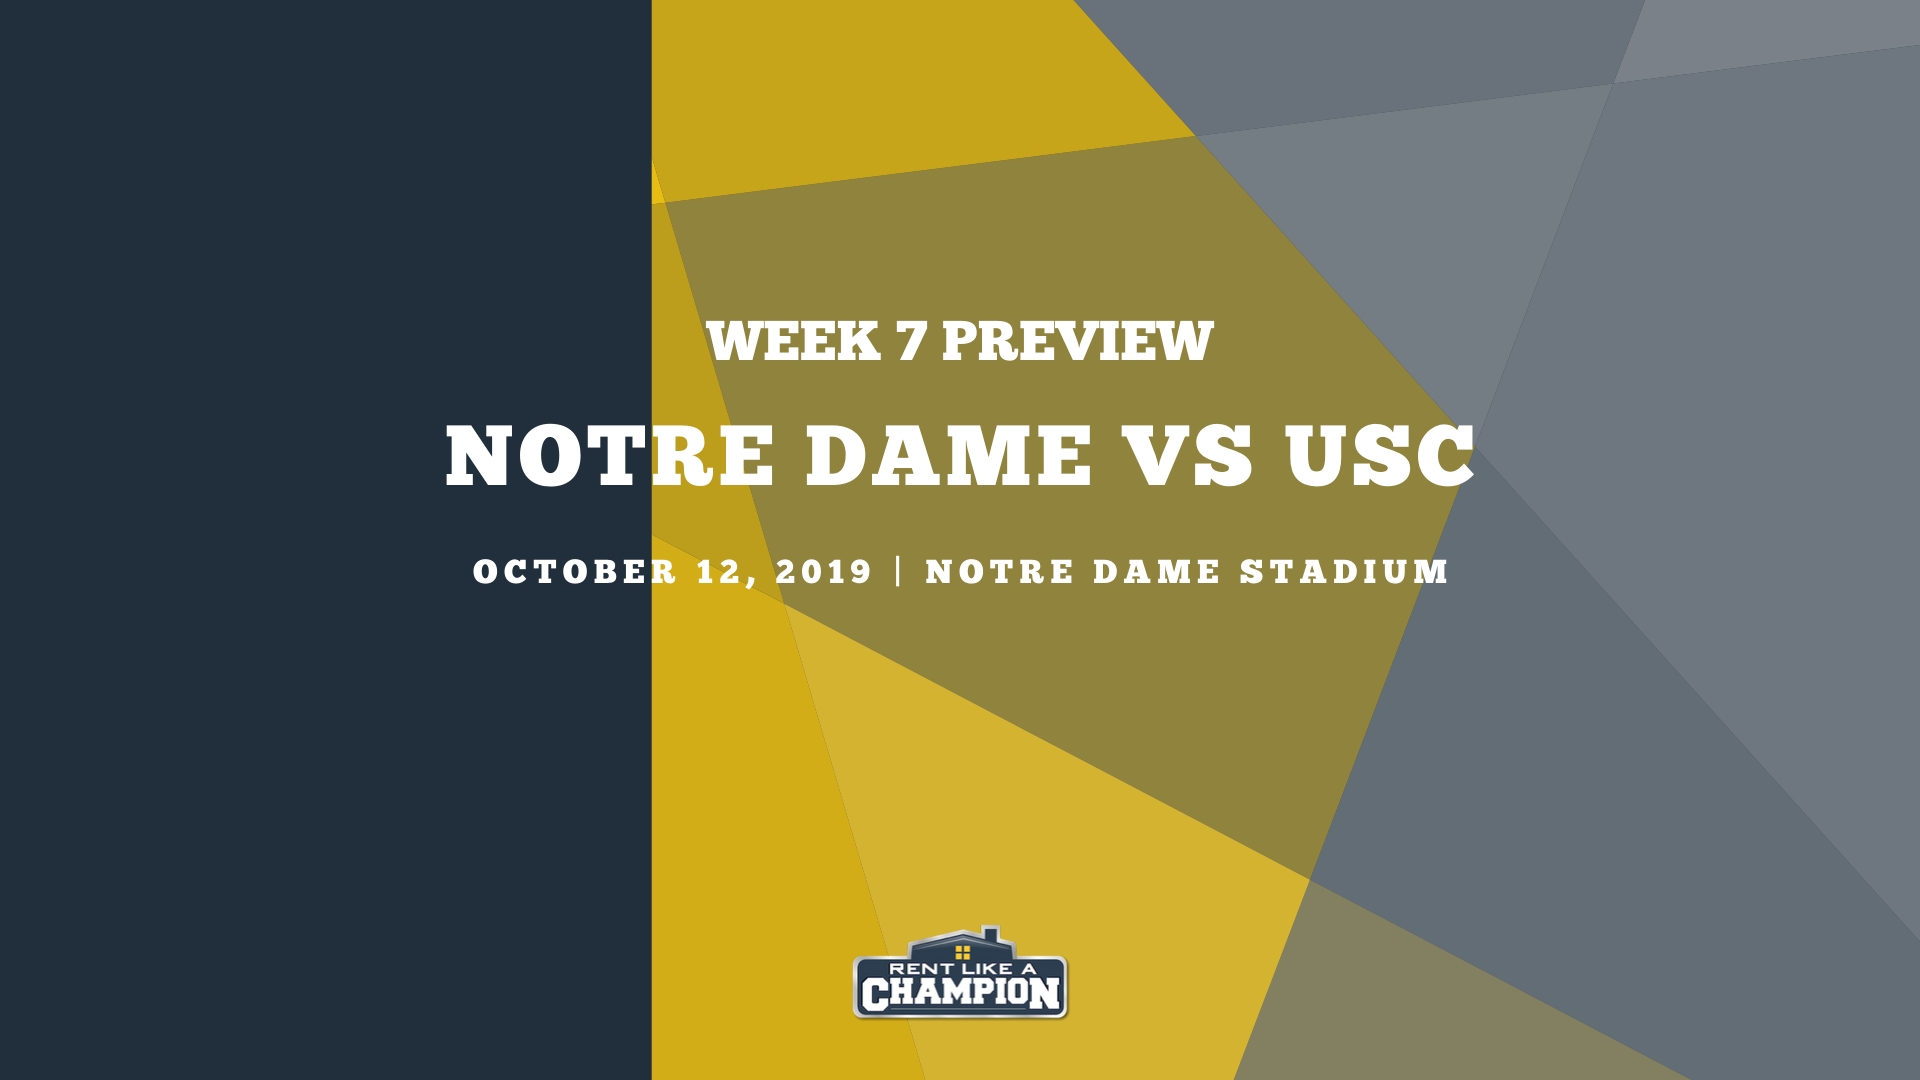 Notre Dame Game Preview Template (4)